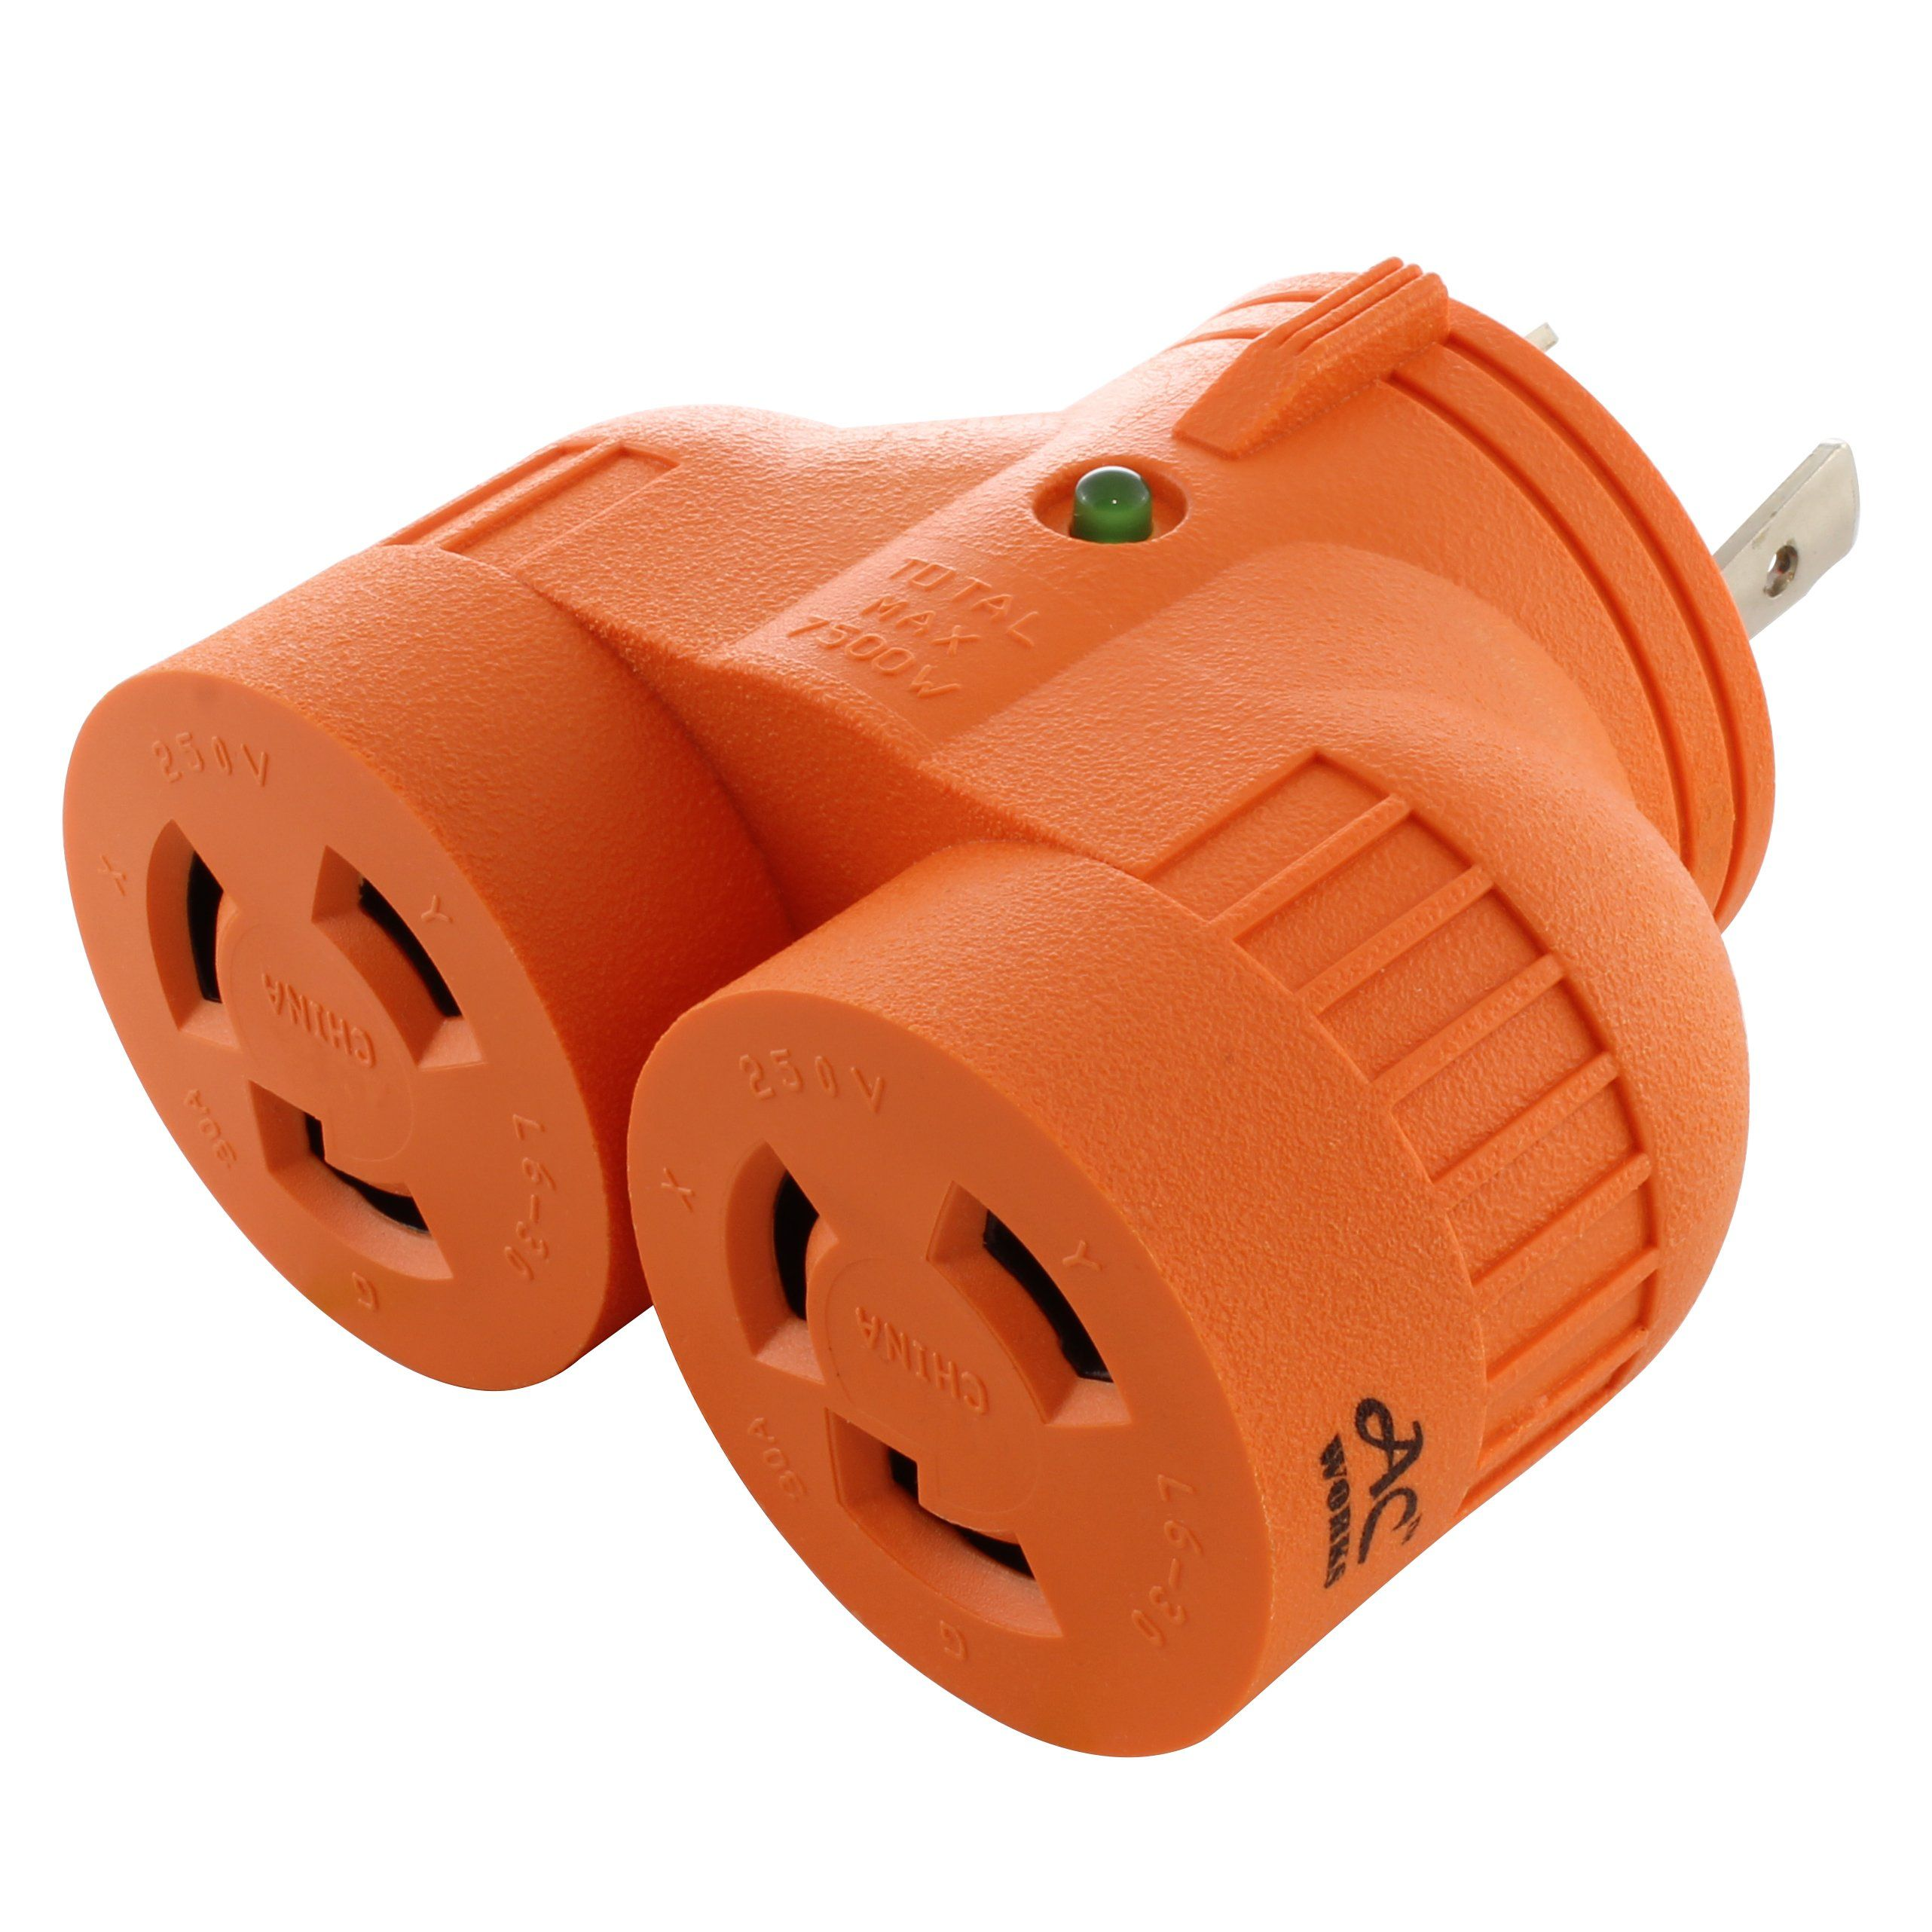 Ac Works V Duo Advl630l630 Adapter L6 30p 30a 250v 3 Prong Locking Plug To 2 Connectors Outlet Adapter Plugs Adapter